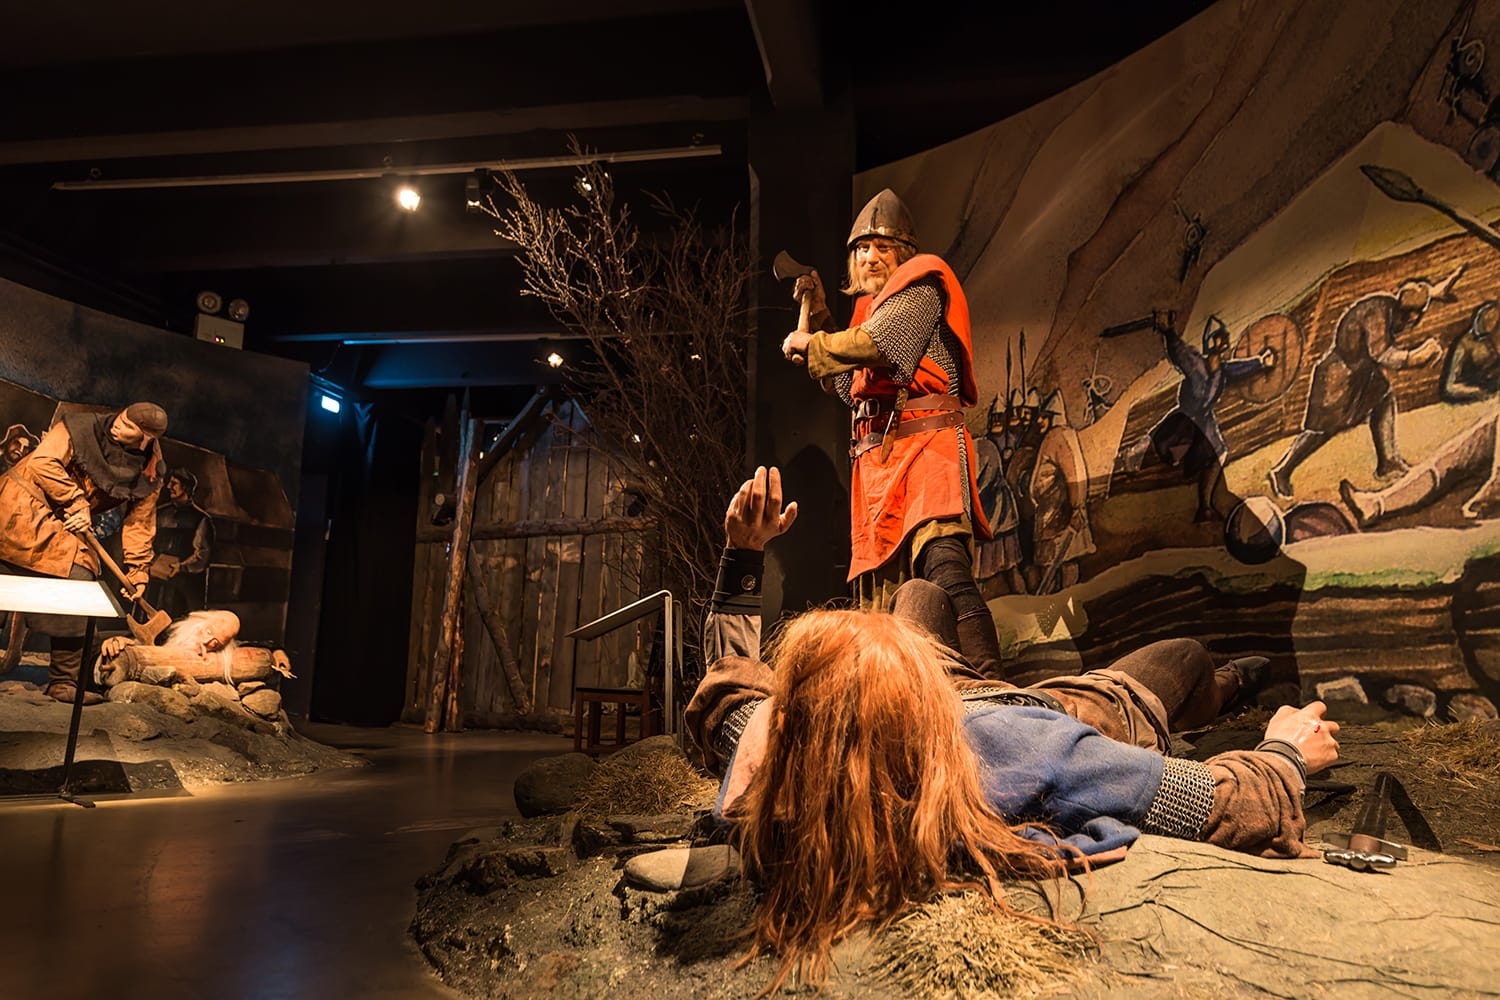 Sculptures from the Viking age in the Saga Museum in Reykjavik, Iceland